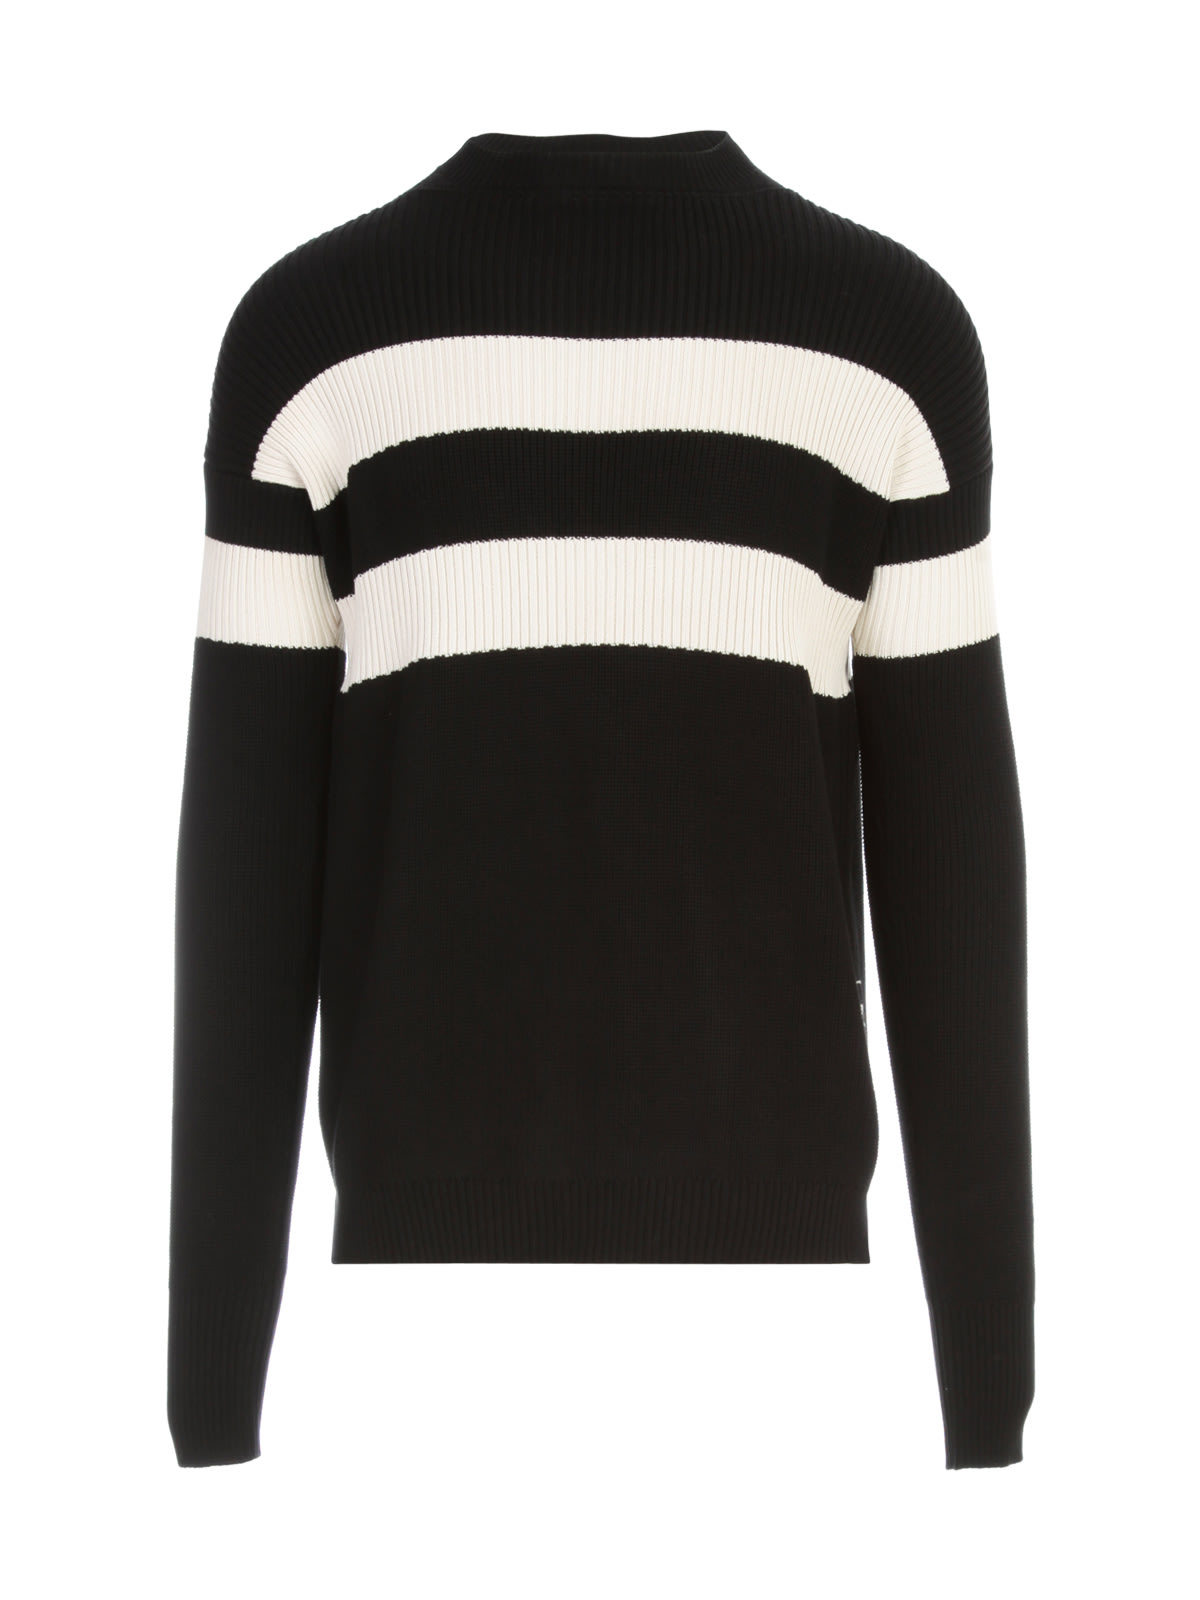 Marni COTTON STRIPED CREW NECK L/S SWEATER